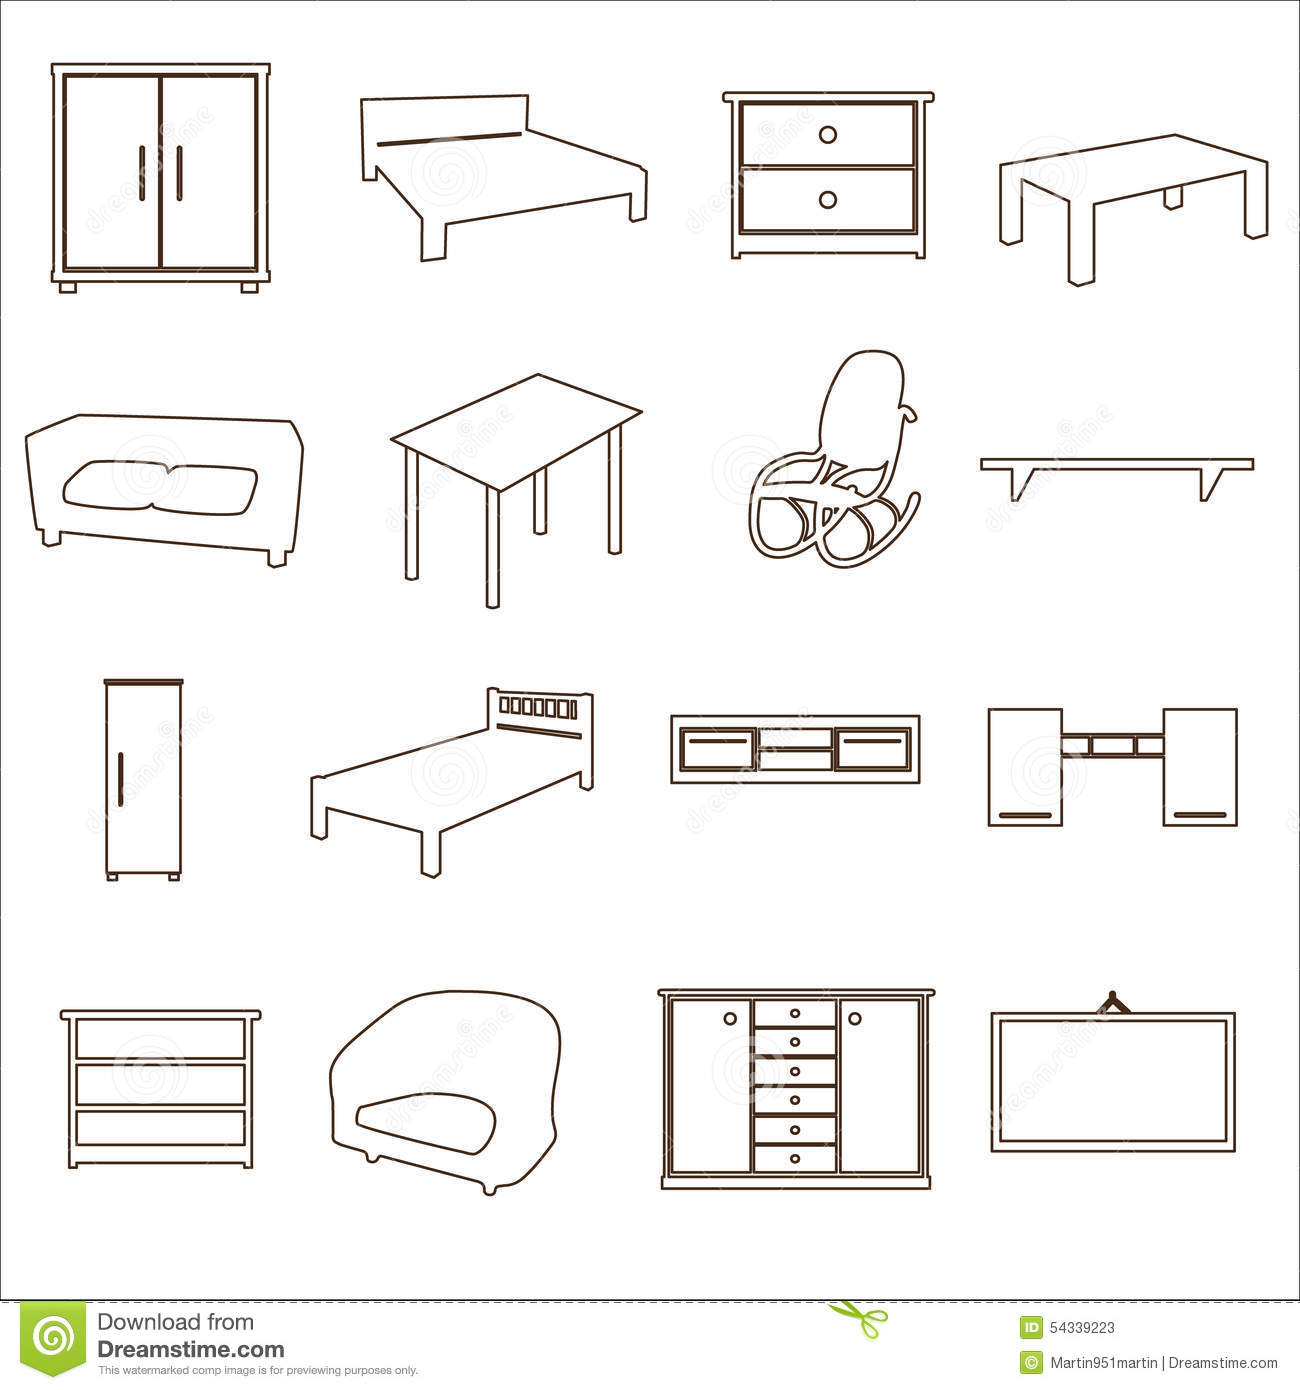 Furniture and home icons vector illustration - Como hacer un mueble para tv ...